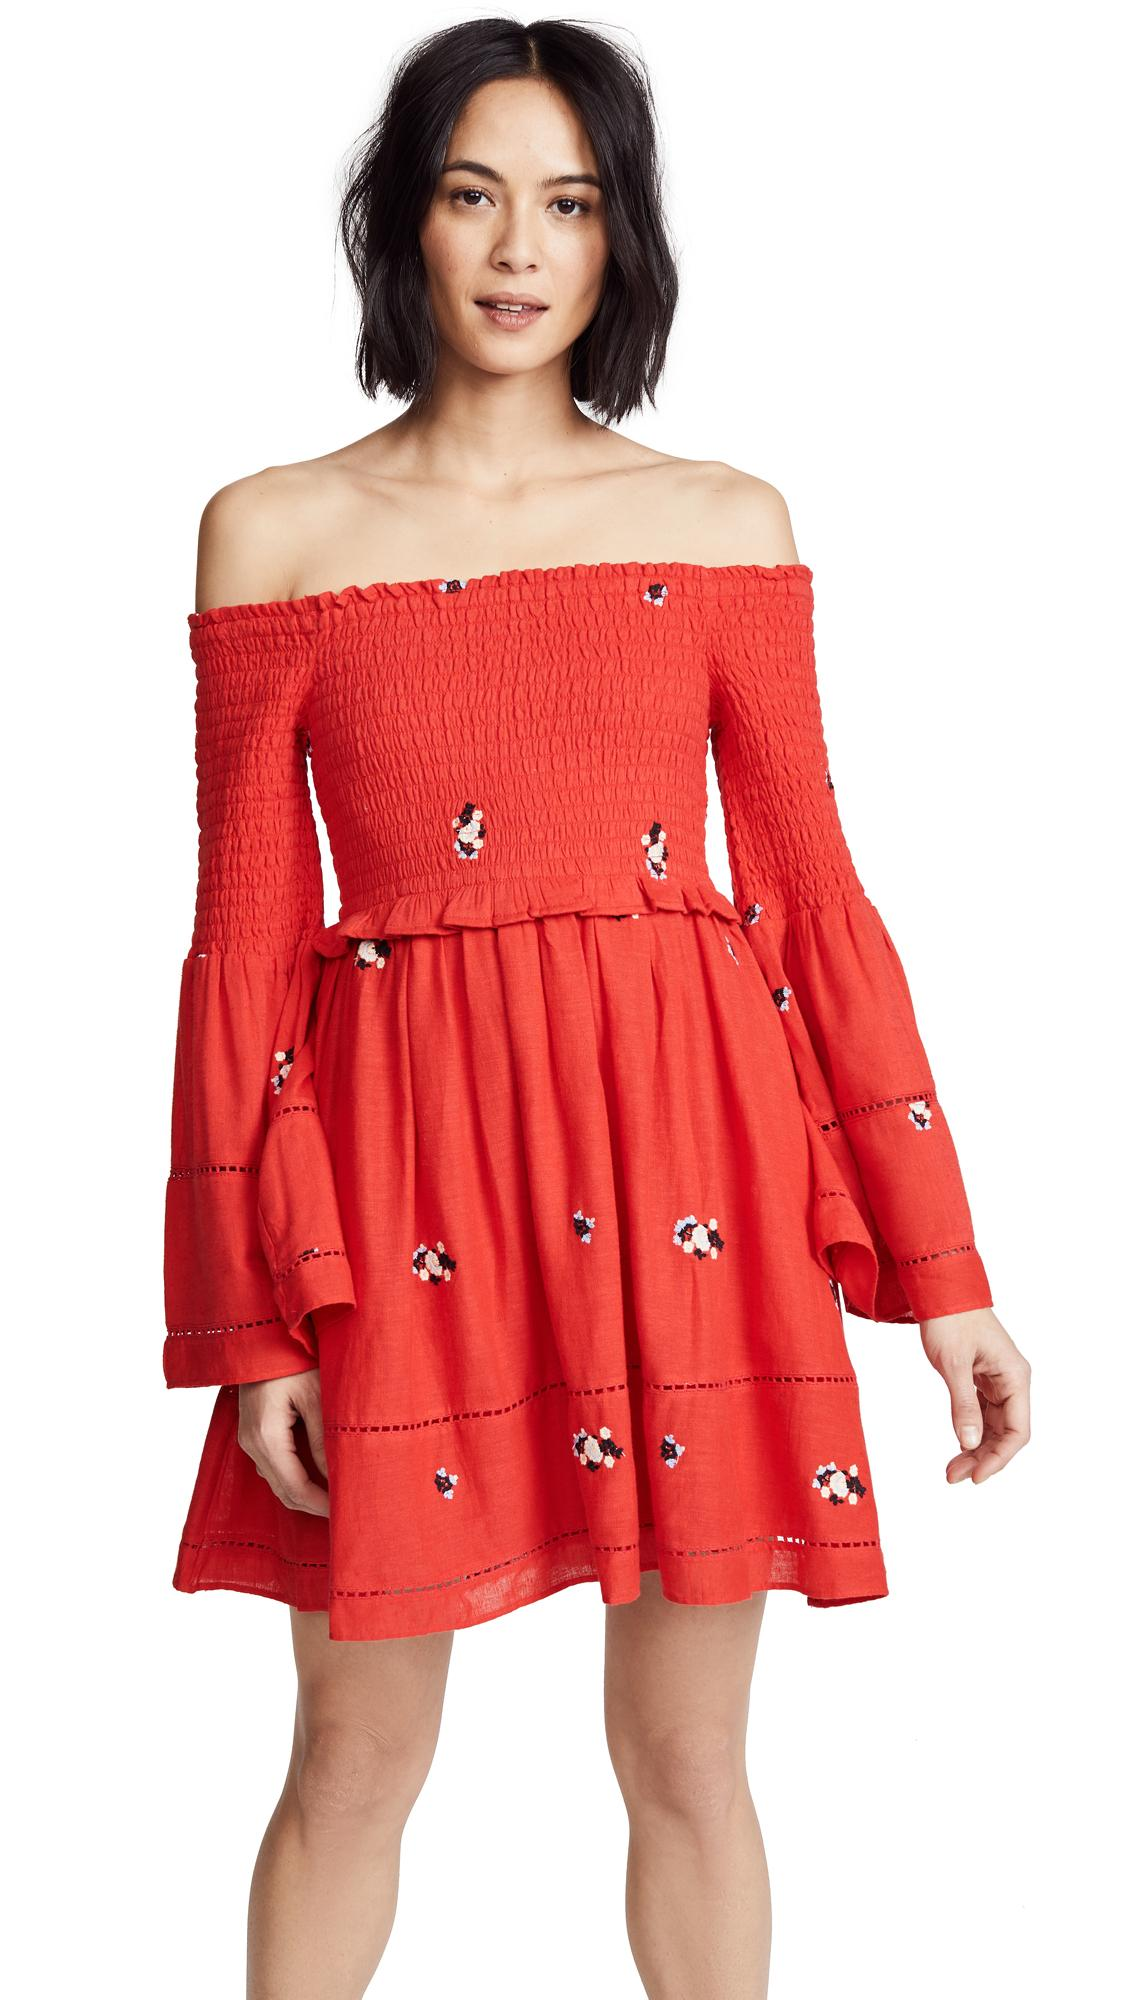 6e53610a206c9 Free People Counting Daisies Embroidered Mini Dress In Red Combo ...